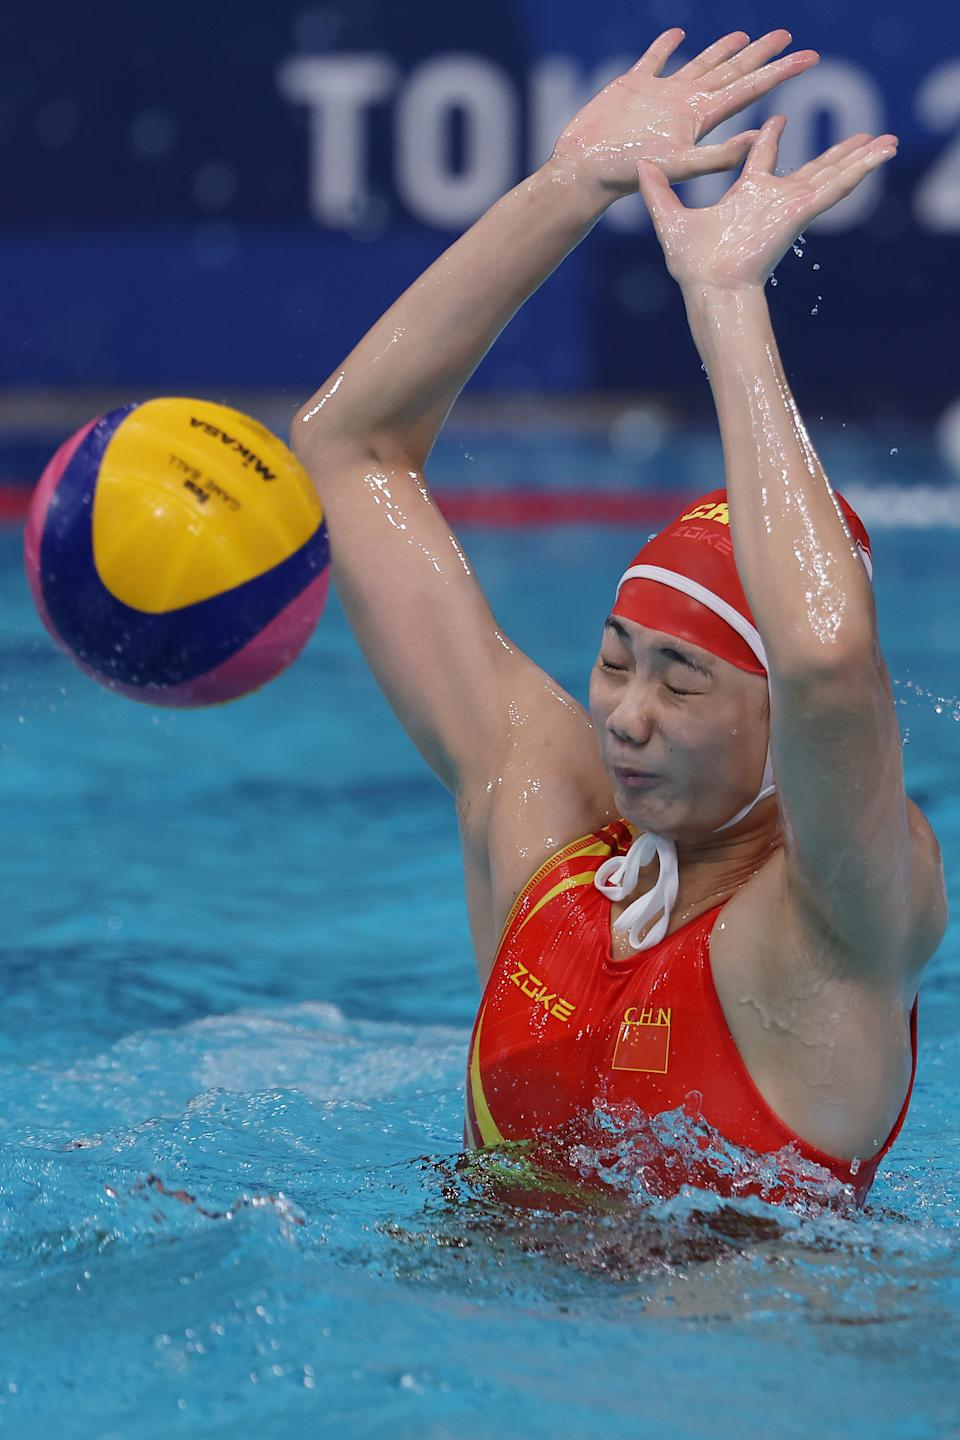 <p>Yineng Shen of Team China makes a save during the Women's Classification 5th-8th match between China and the Netherlands on day thirteen of the Tokyo 2020 Olympic Games at Tatsumi Water Polo Centre on August 05, 2021 in Tokyo, Japan. (Photo by Al Bello/Getty Images)</p>